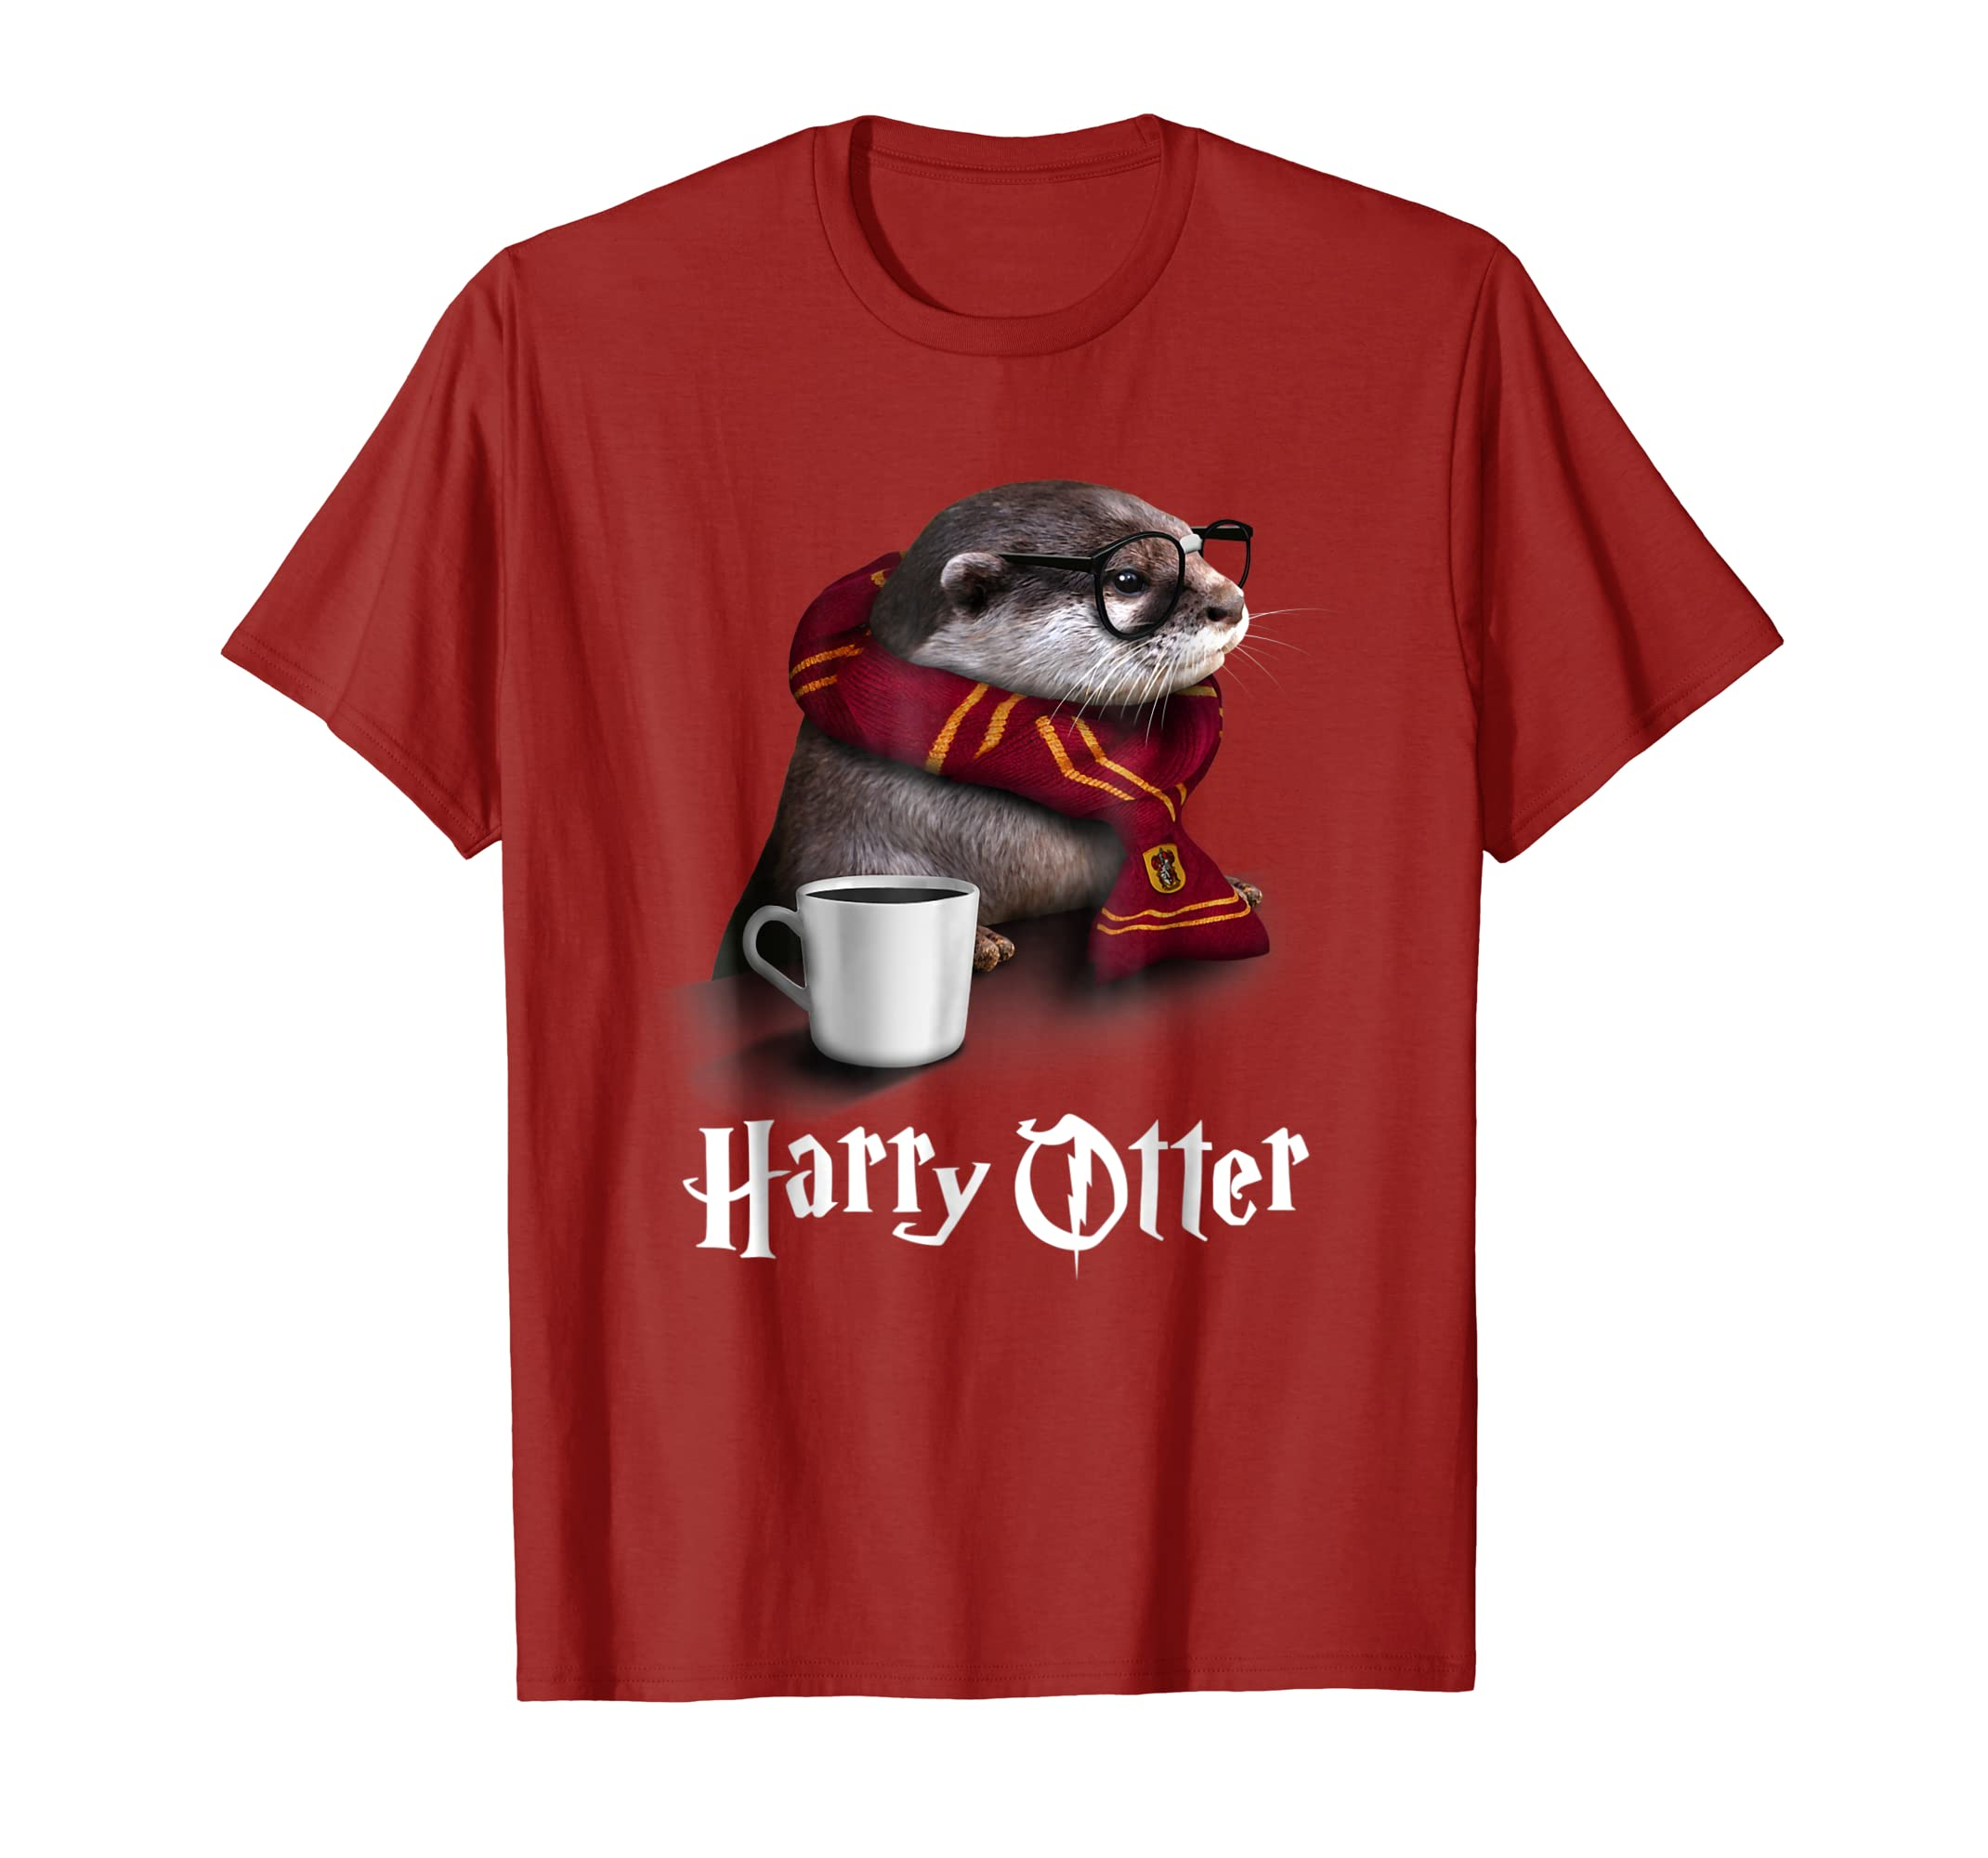 7109dcc1f Amazon.com: Funny Otter T-shirt - Harry Otter Shirt for Otter lover:  Clothing